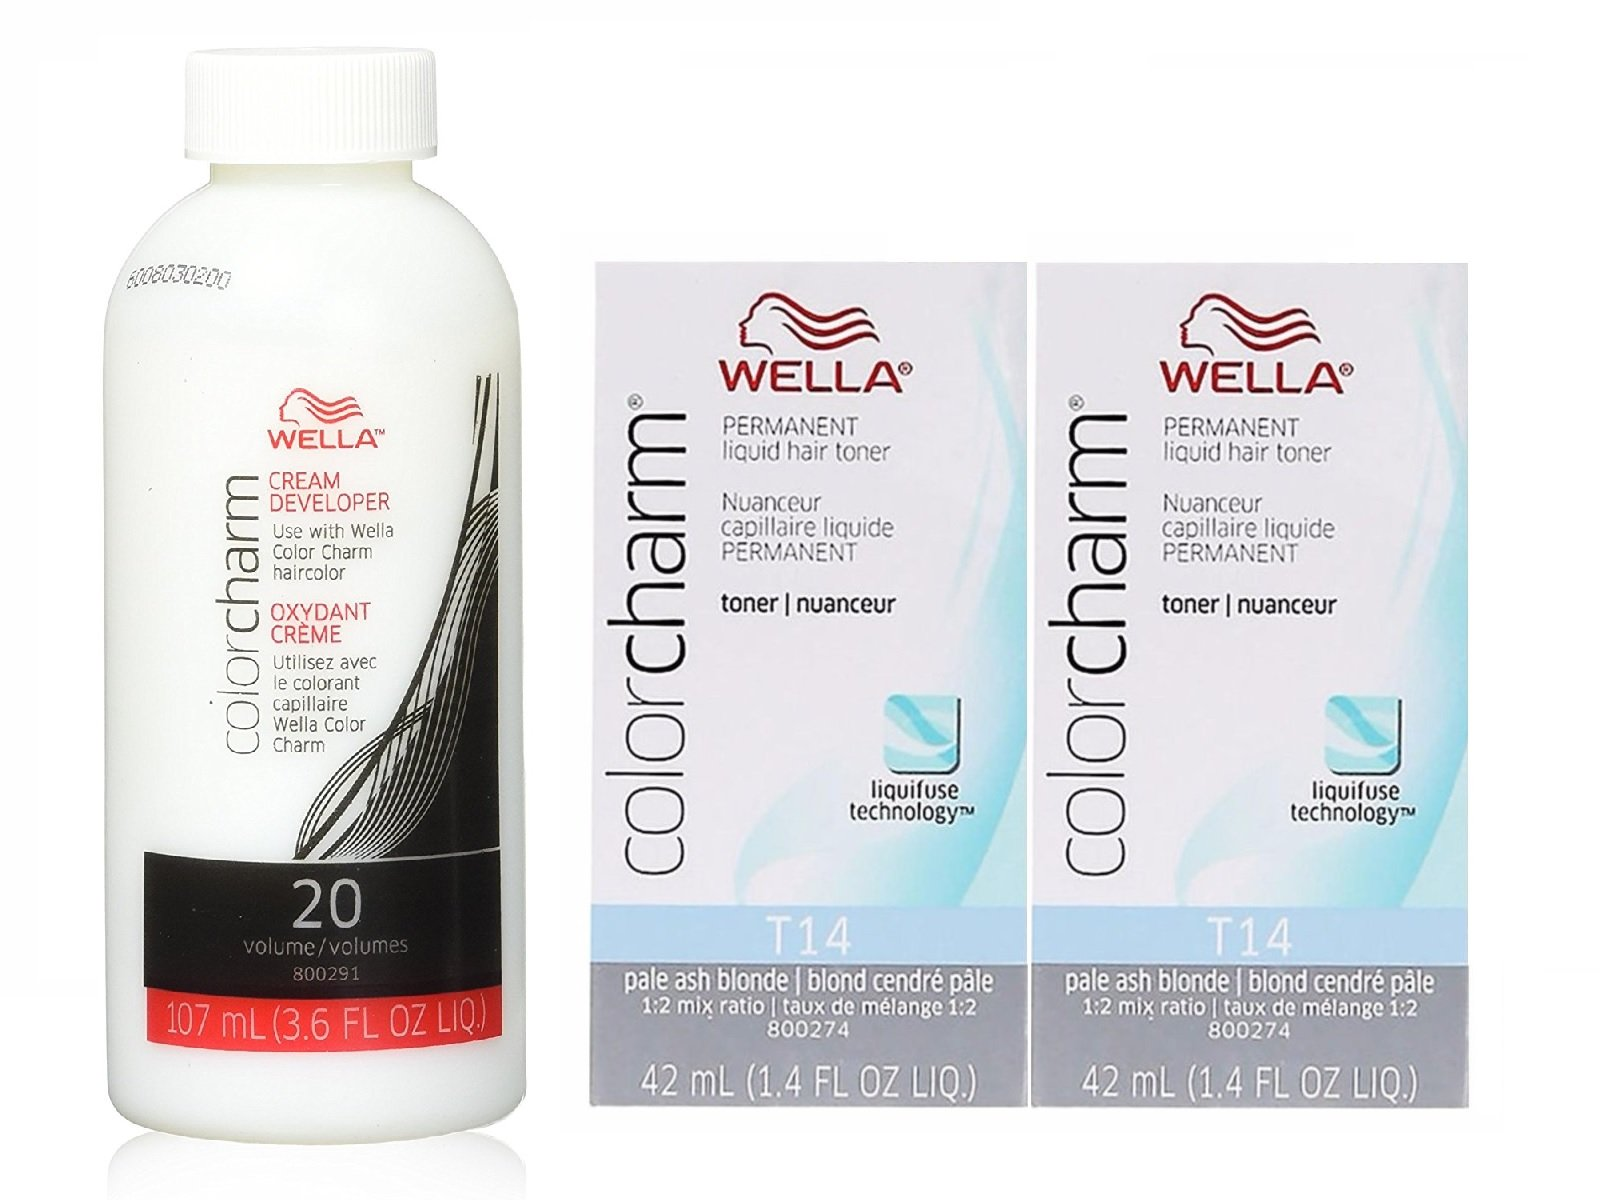 Wella Color Charm T14 Pale Ash Blonde 2-Pack with CC Cream 20 Developer 3.6 oz. - COMBO DEAL! by Wella (Image #1)